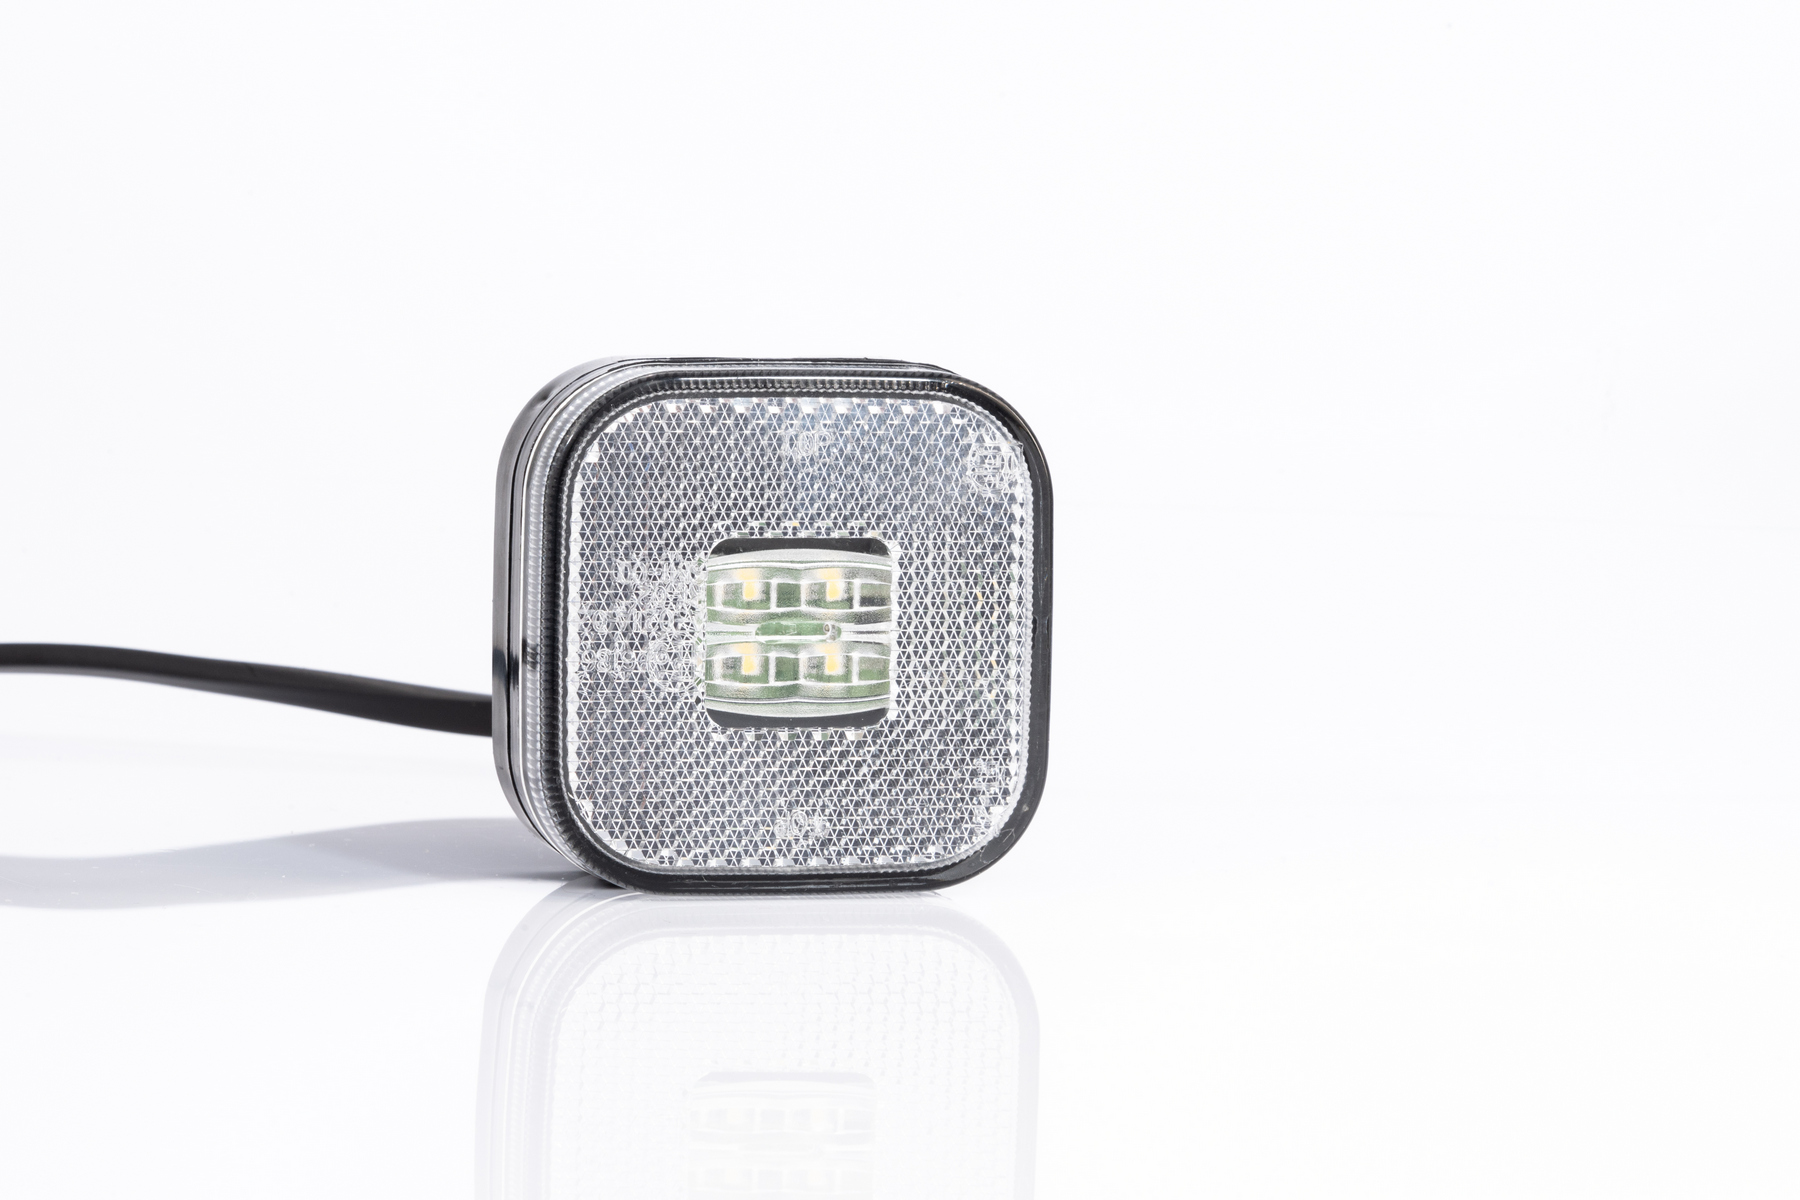 Pozička FT-027 LED čirá 12/24V